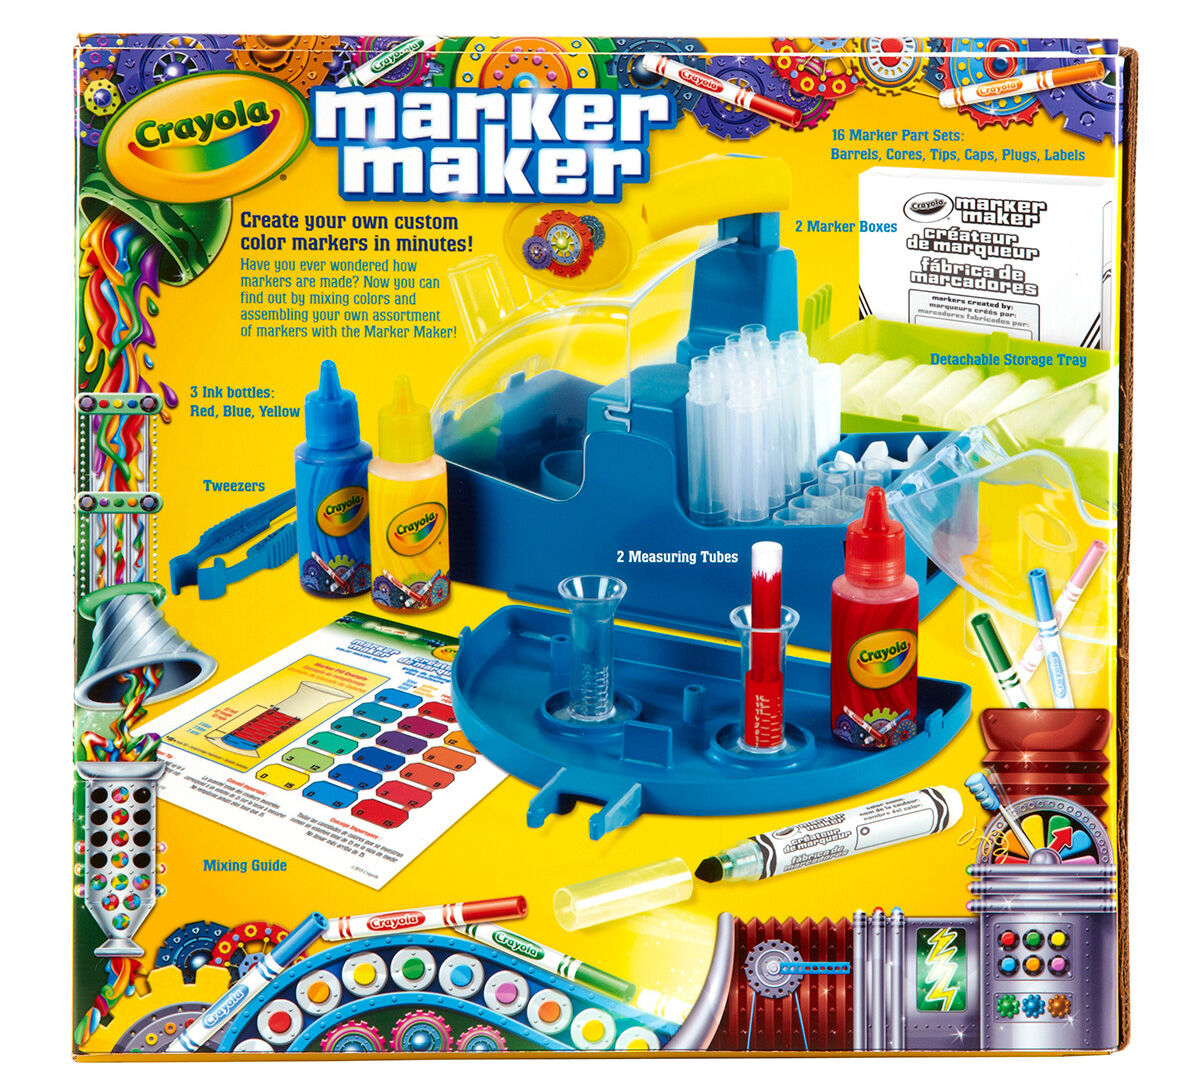 Make Your Own Markers with the Crayola Marker Maker | Crayola.com